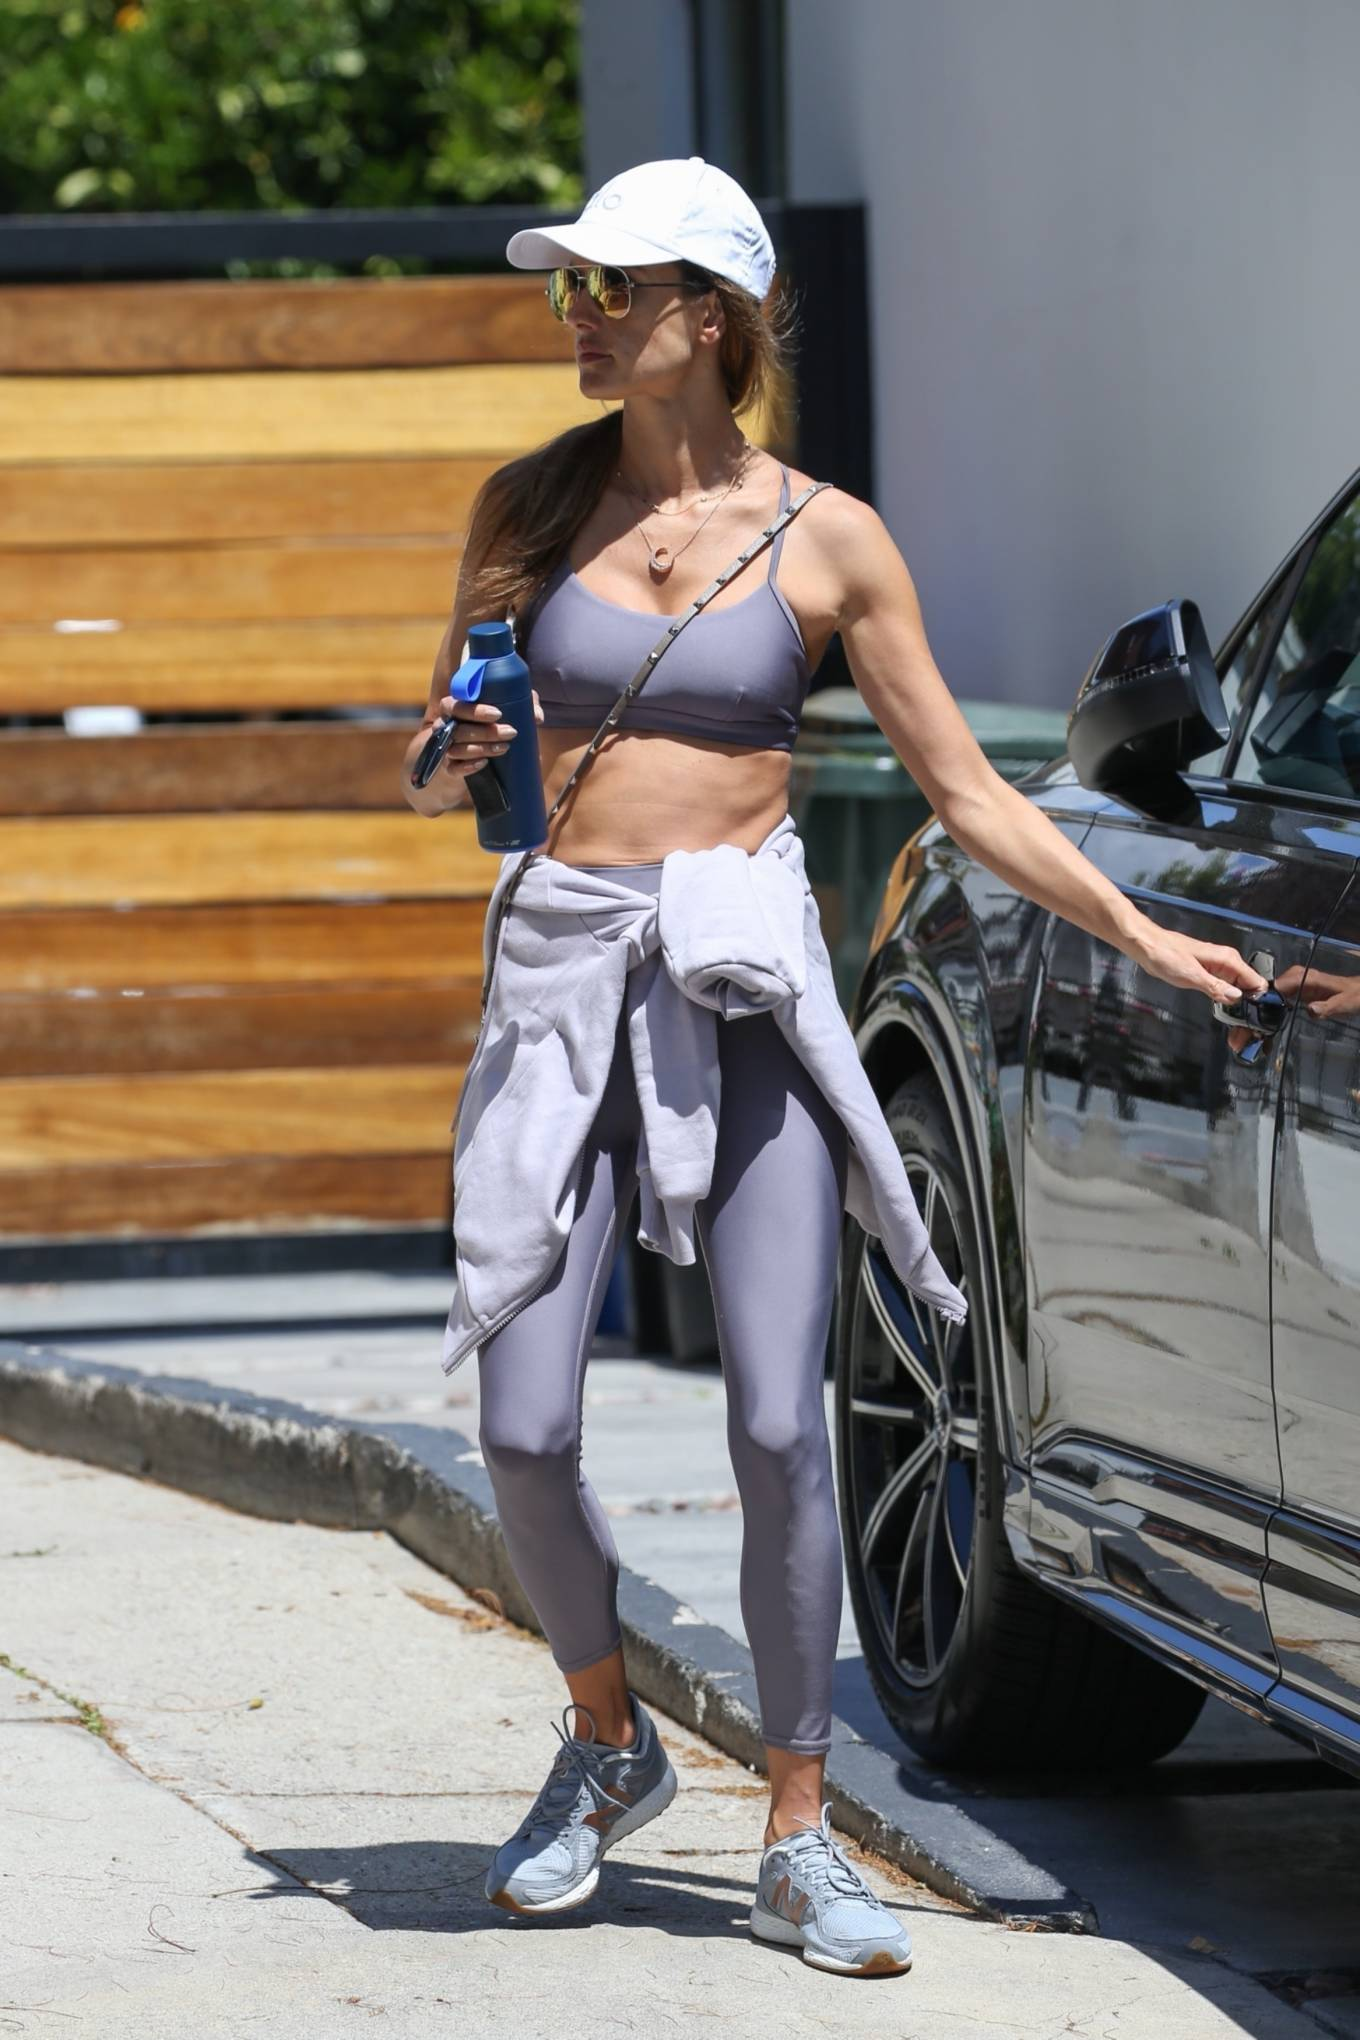 Alessandra Ambrosio rocking a fitted lilac sports bra with a stretch fabric, a scoop neck and spaghetti straps